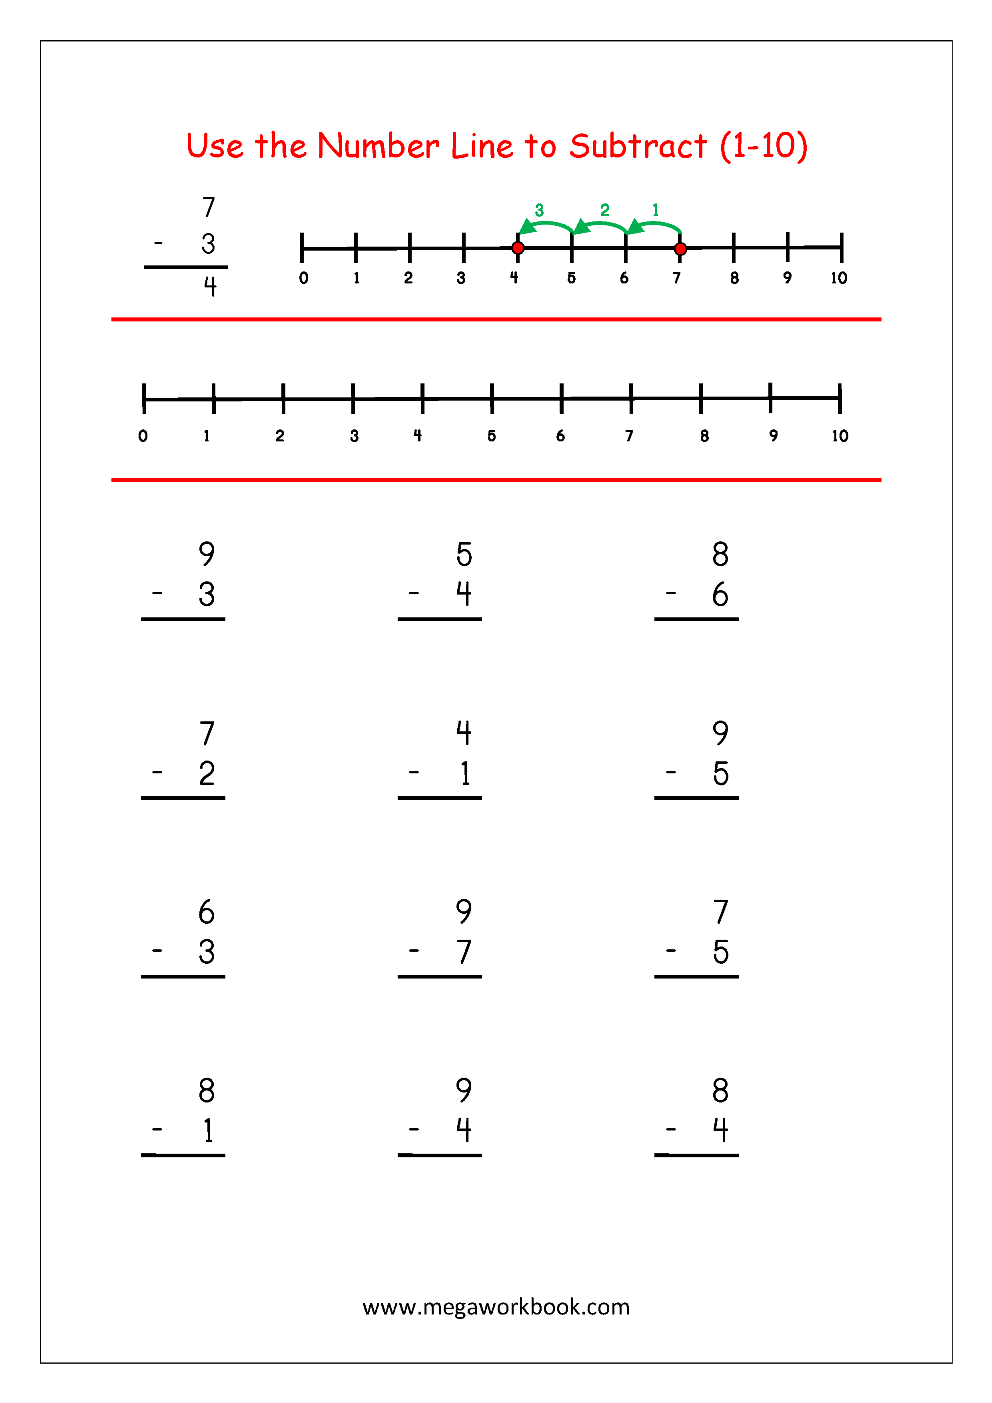 hight resolution of Free Printable Number Subtraction (1-10) Worksheets For Grade 1 And  Kindergarten - Subtraction With Pictures/Objects To Cross Out - Subtraction  Using Number Line - MegaWorkbook